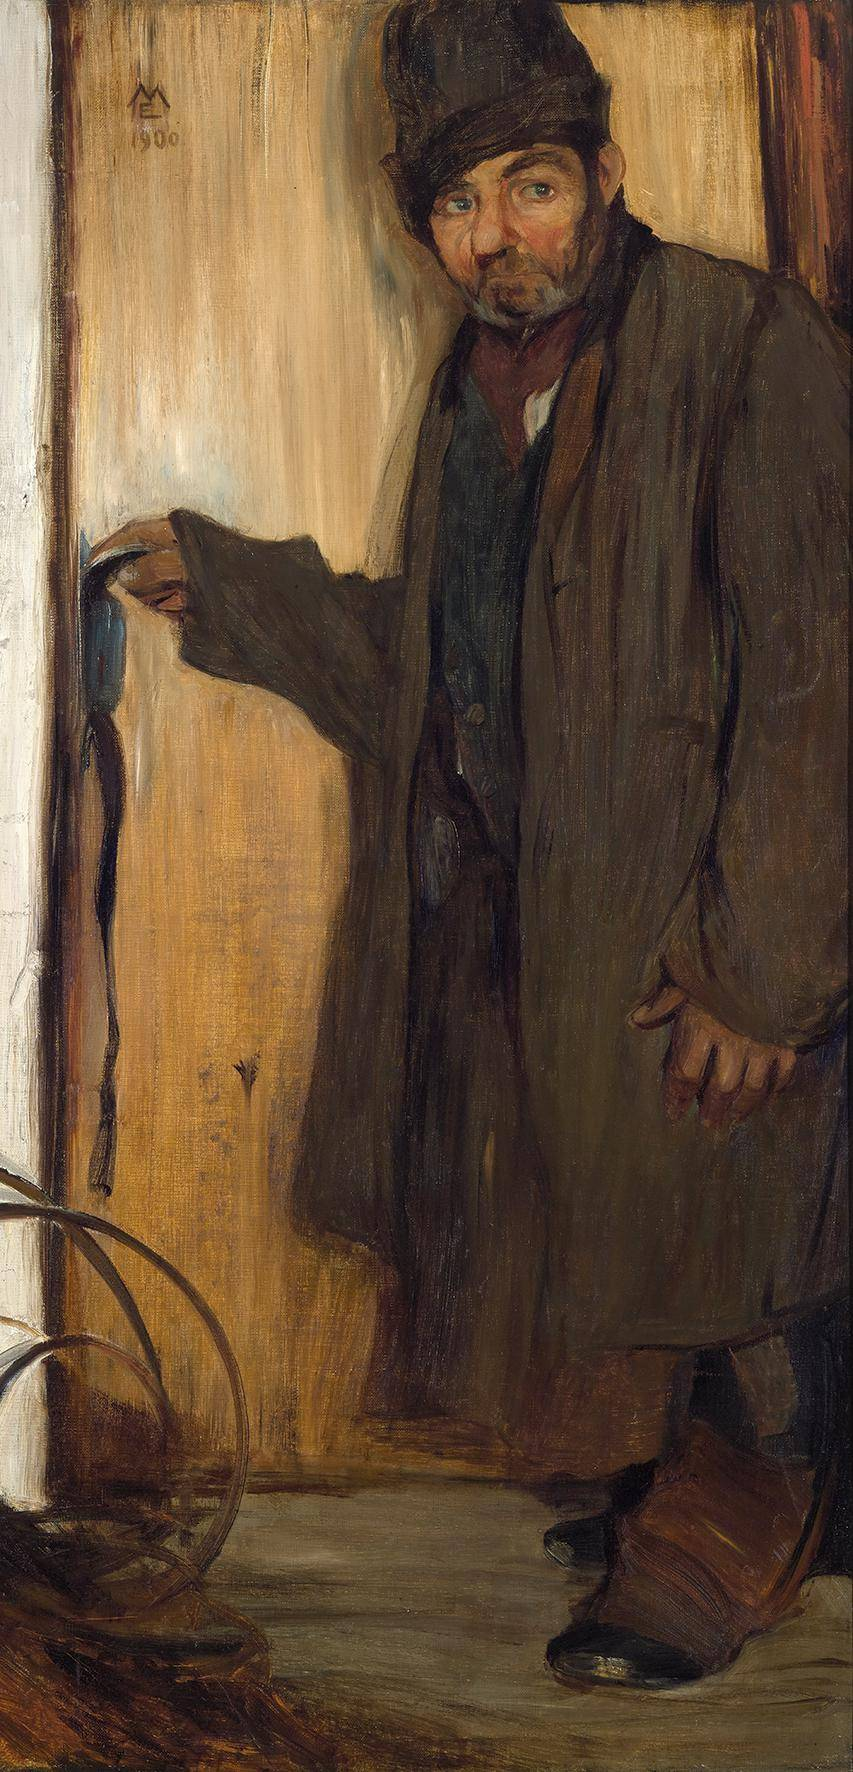 Man in a brown coat in front of a door